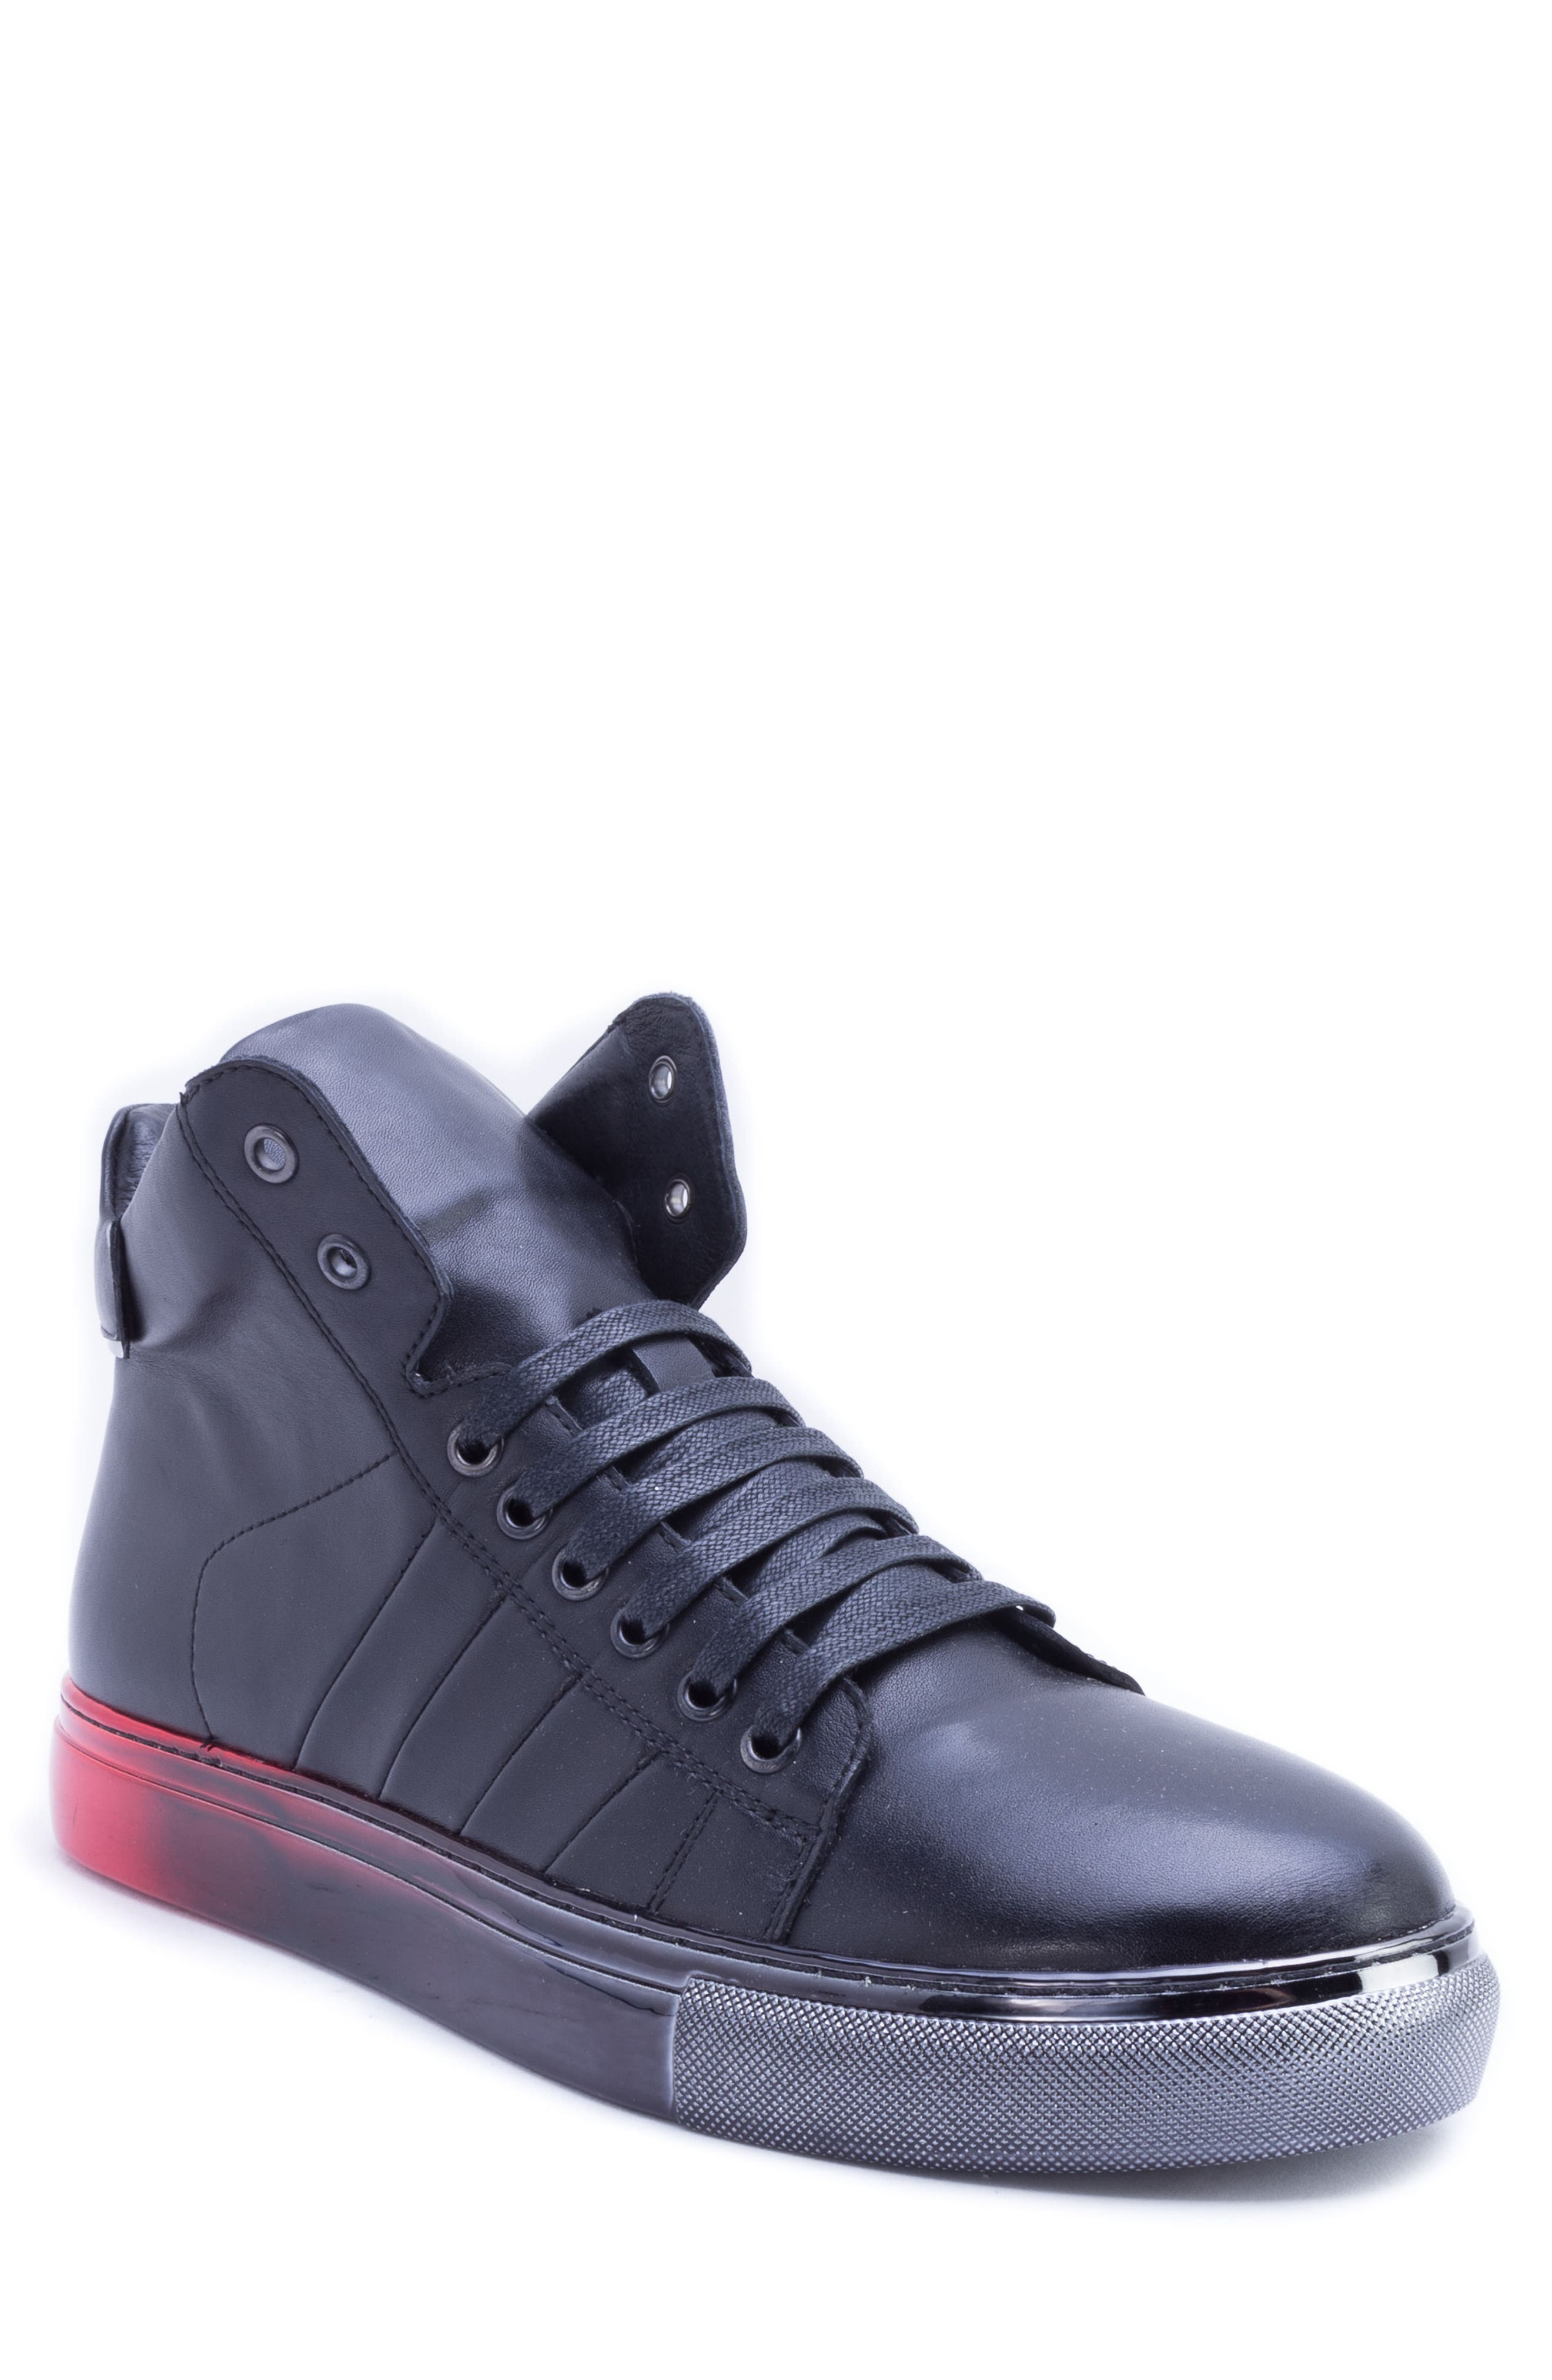 Bronson Sneaker,                         Main,                         color, BLACK LEATHER